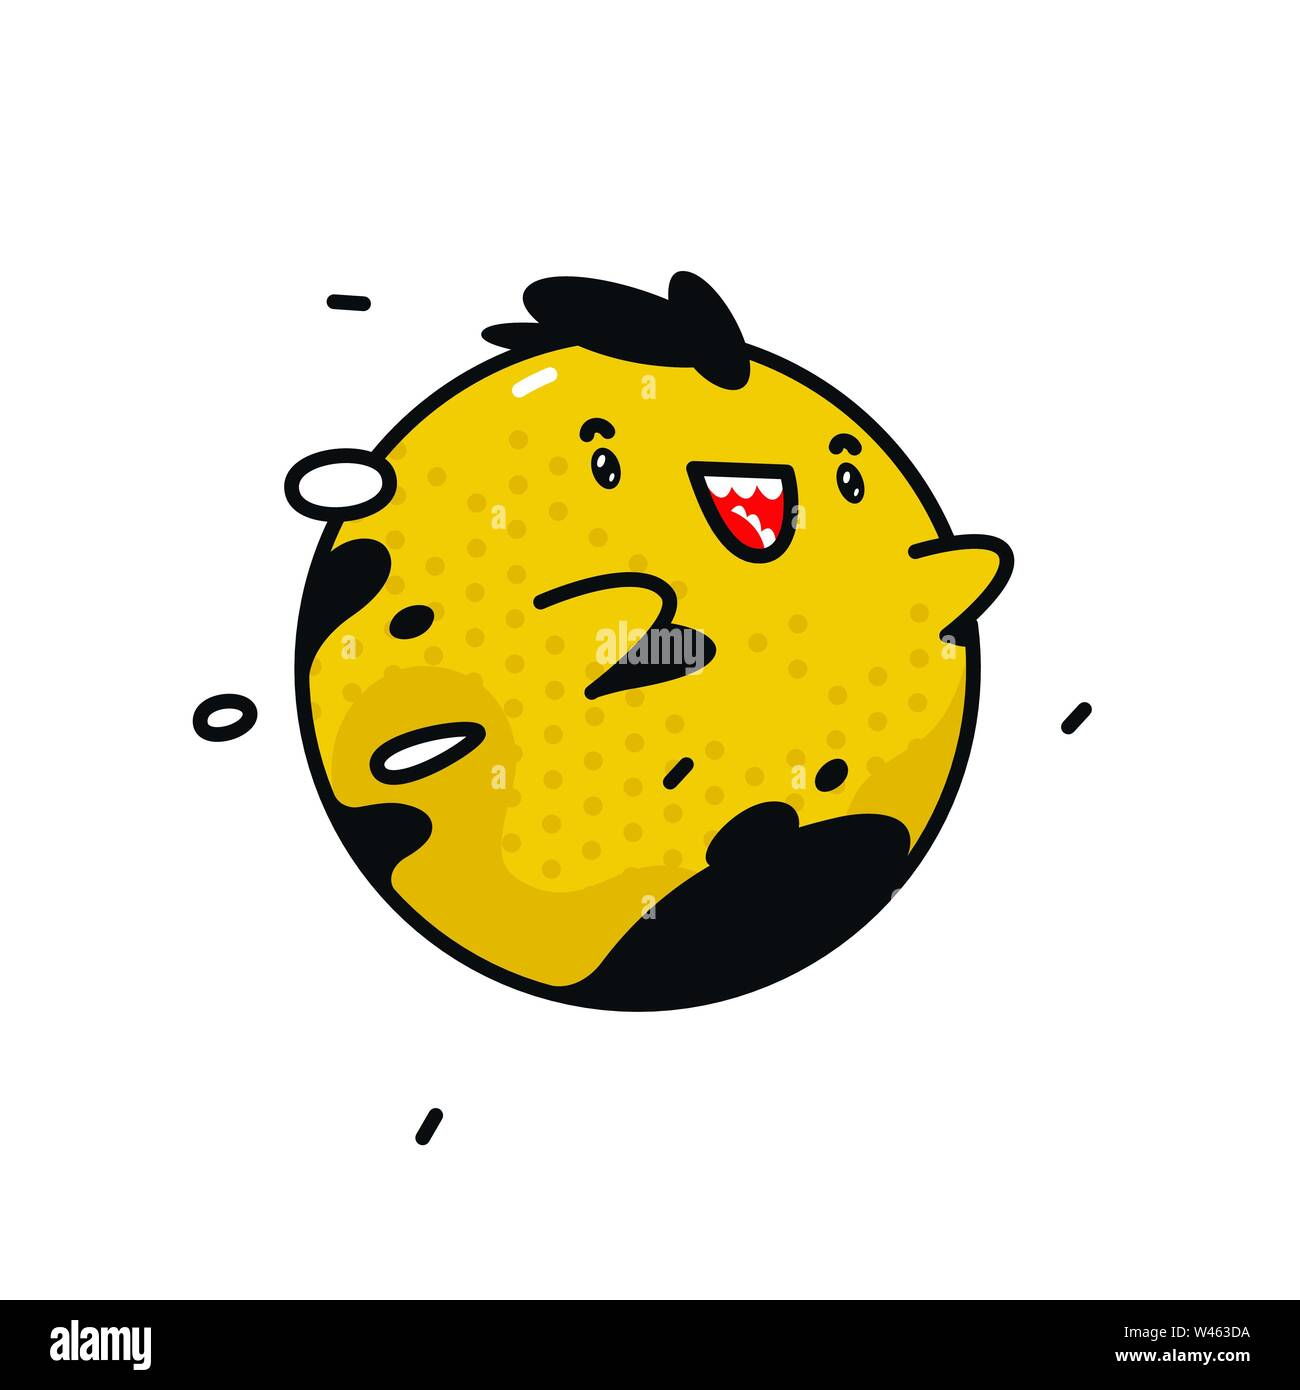 Yellow round monster character. Vector. Flying cute mascot. Corporate character for a company or store. - Stock Image